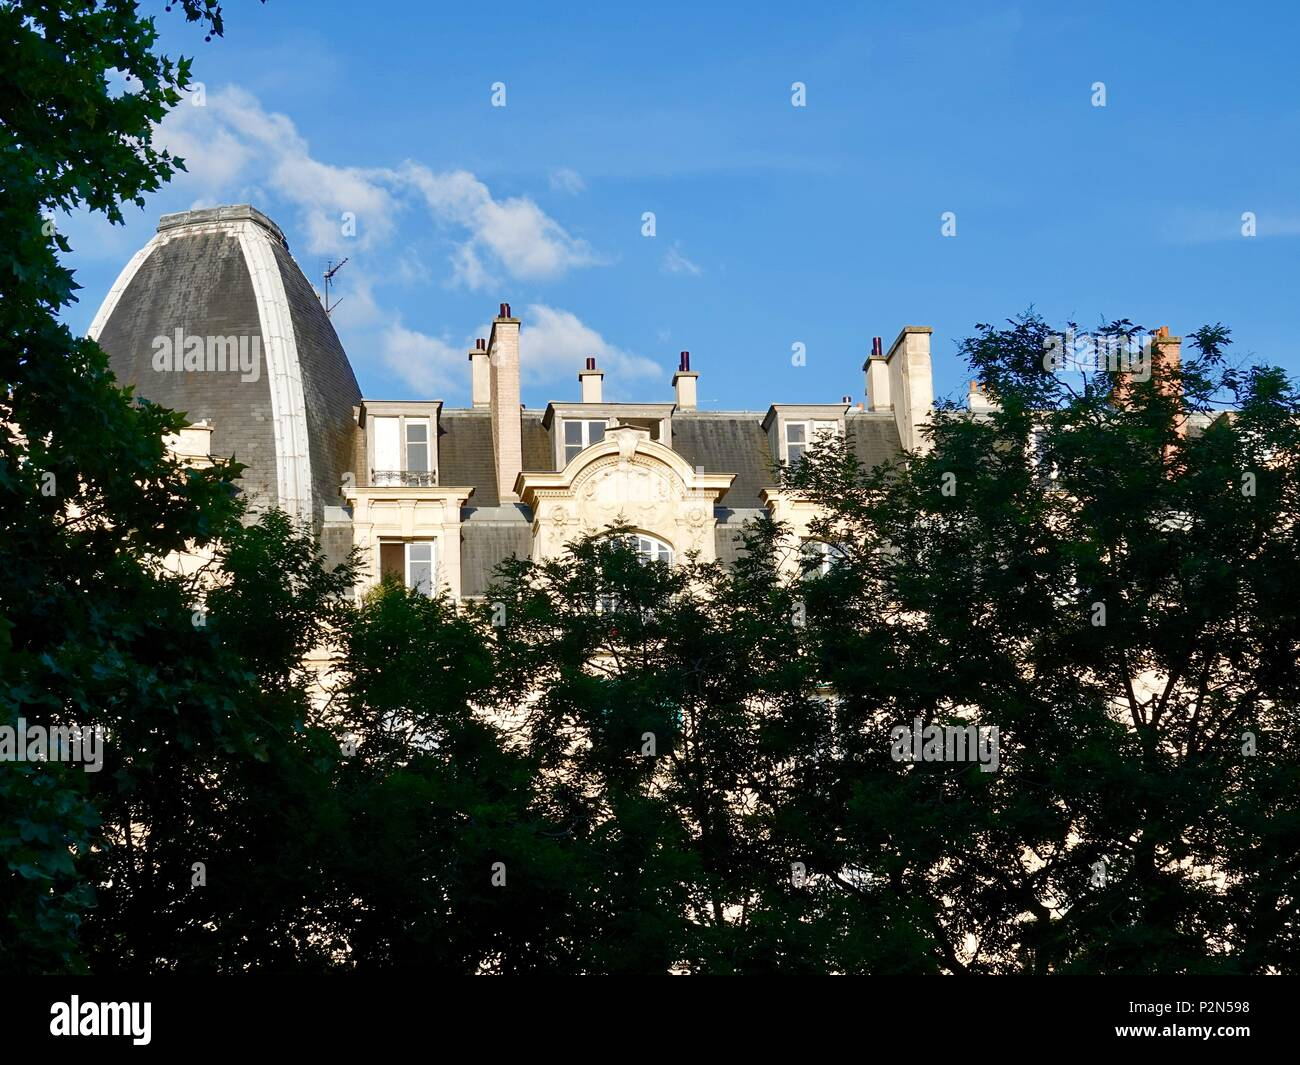 Rooftop of typical Parisian architectural style in the 11th Arrondissement, seen above the tree line in late afternoon sunlight. Paris, France. - Stock Image